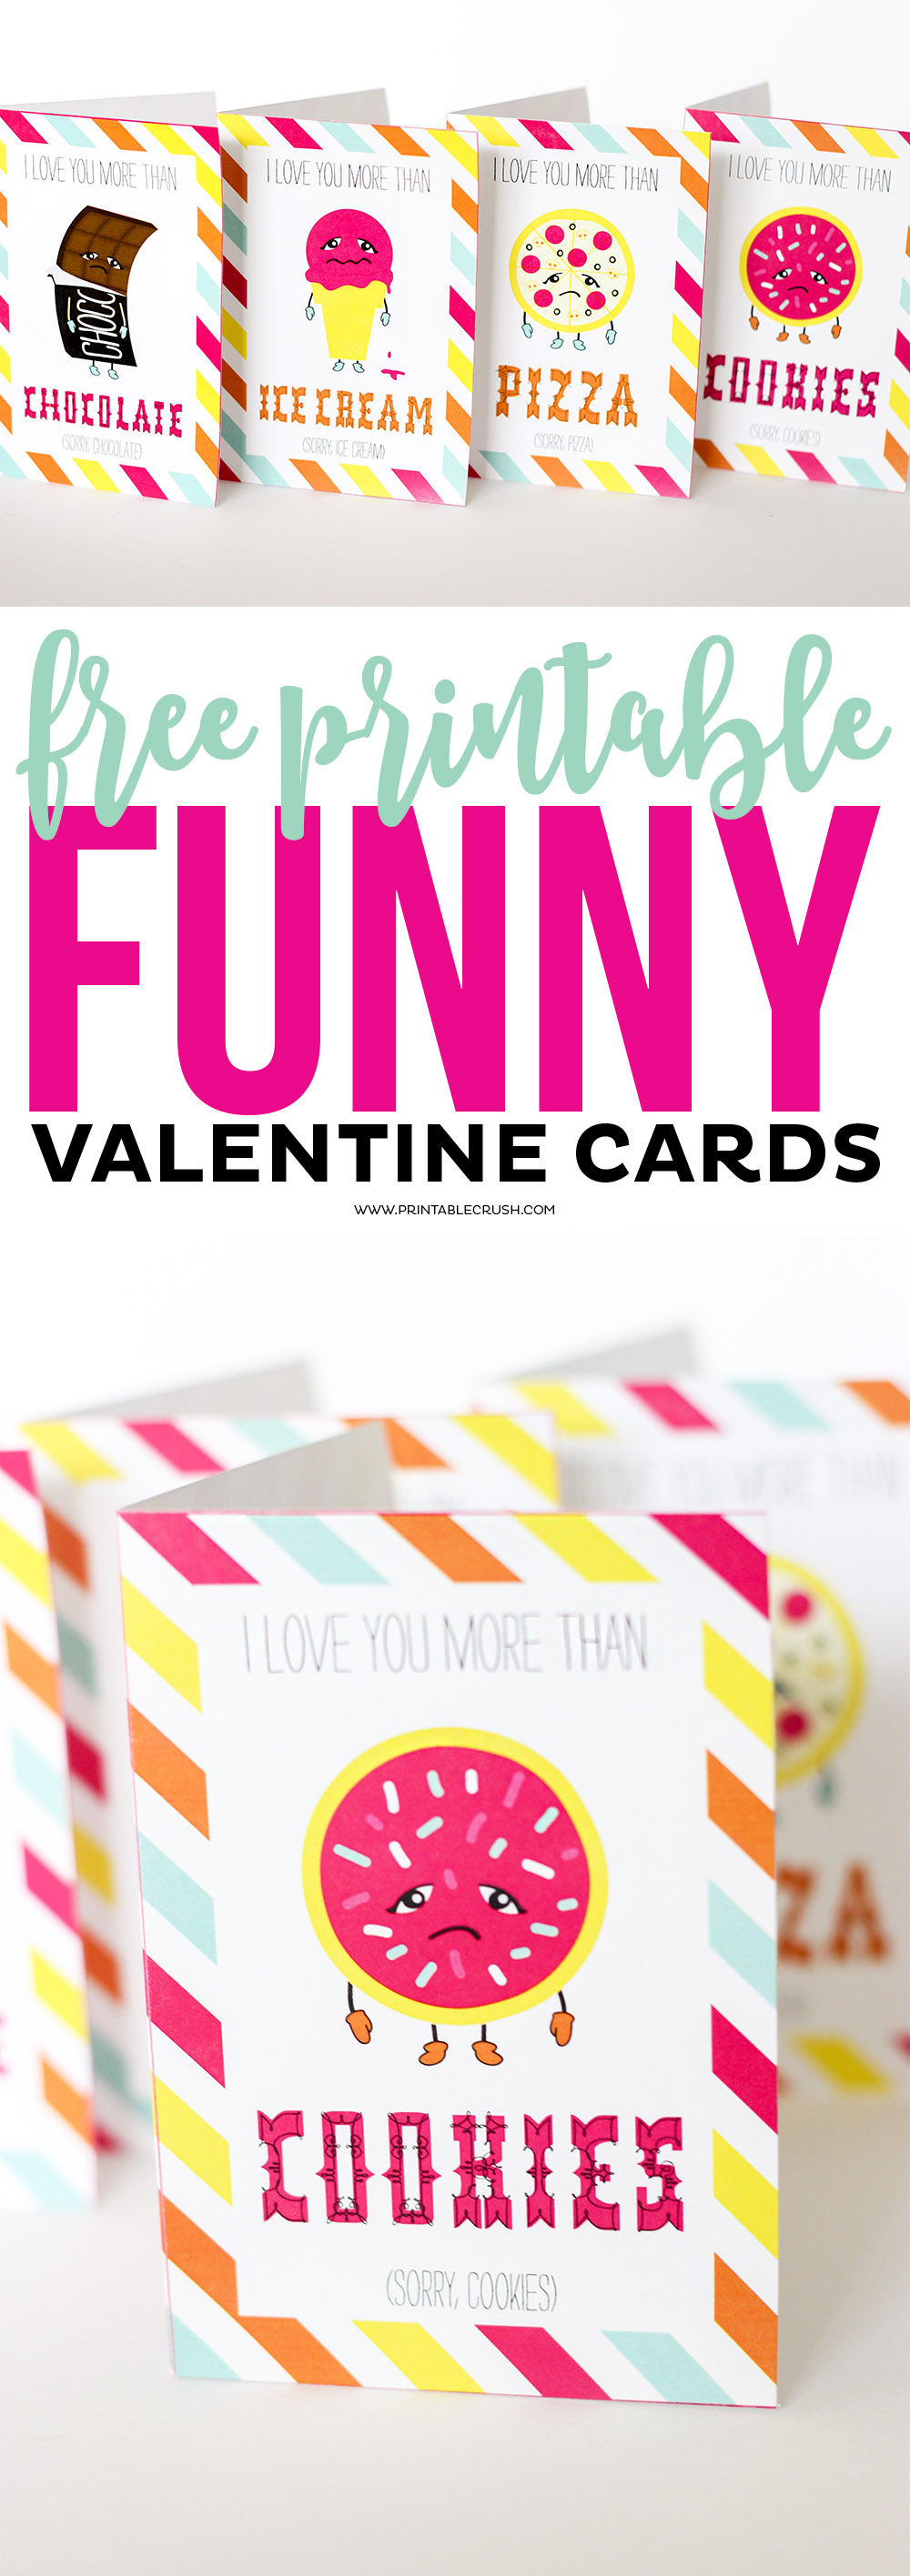 photo regarding Funny Printable Valentines Cards called Free of charge Printable Amusing Valentine Playing cards - Printable Crush